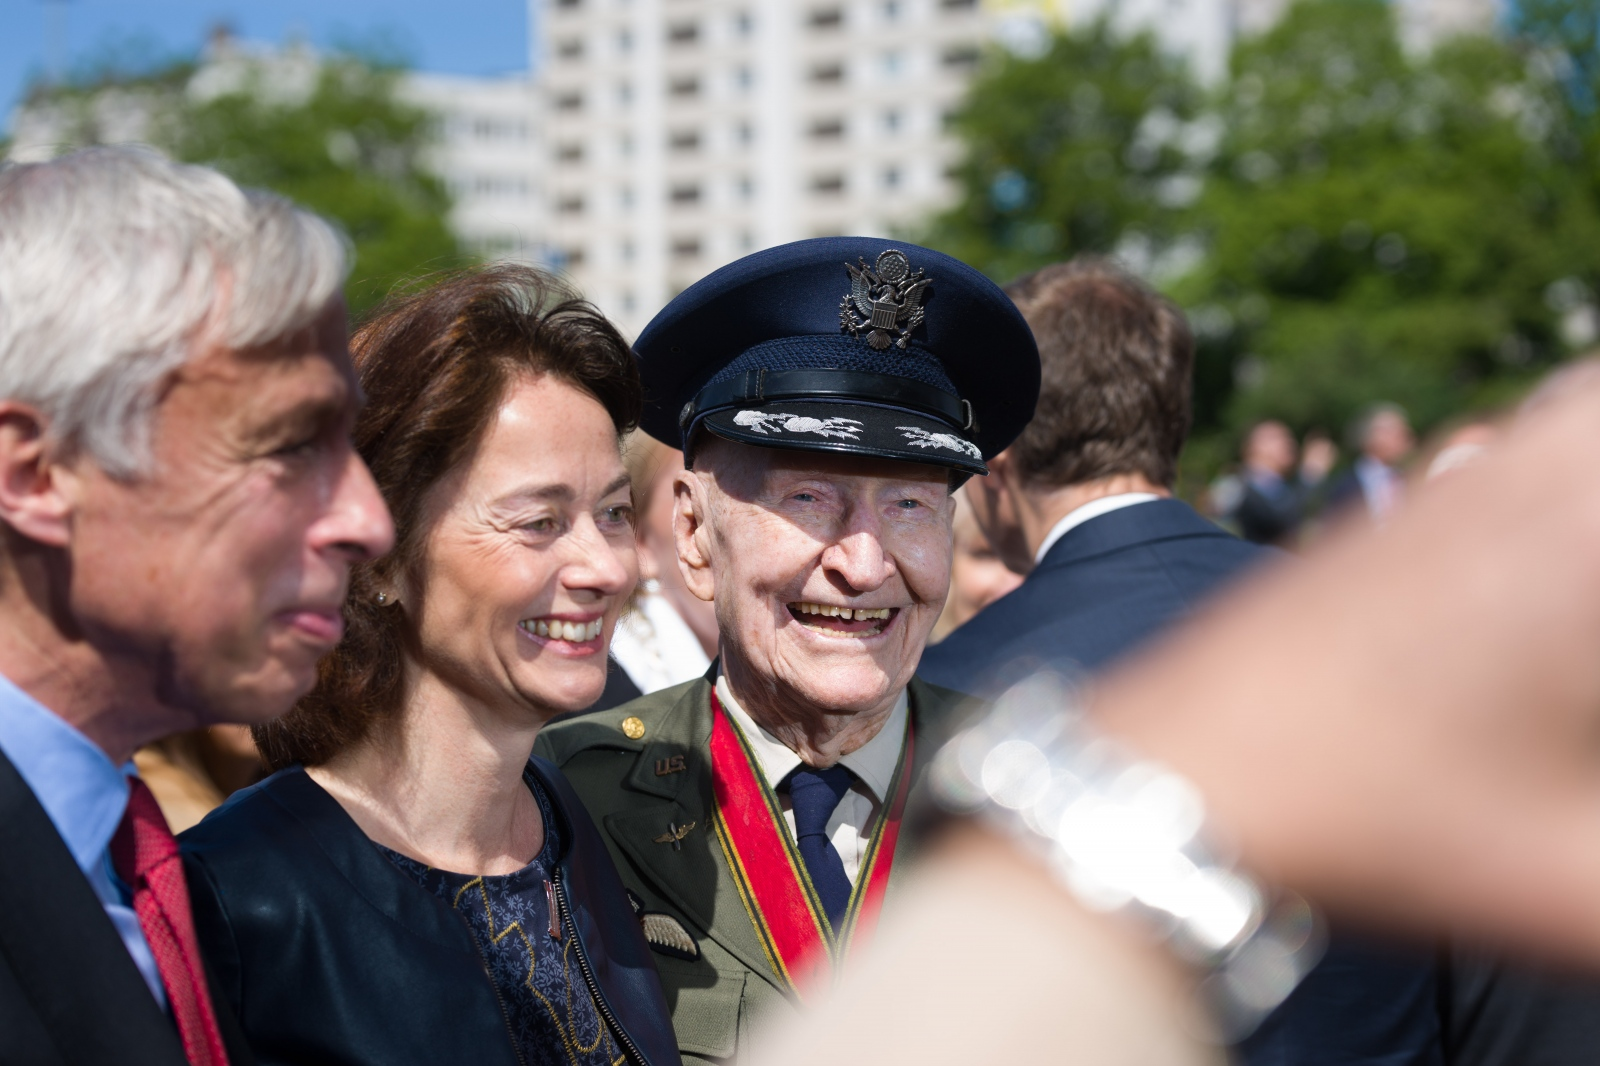 British Minister of State for Defence Earl Howe, German Federal Minister of Justice Katarina Barley and 98-year-old former U.S. Air Force pilot Gail Halvorsen pose for a picture after the ceremonial act for the 70th anniversary of the end of the Berlin Blockade. Berlin, May 12, 2019.